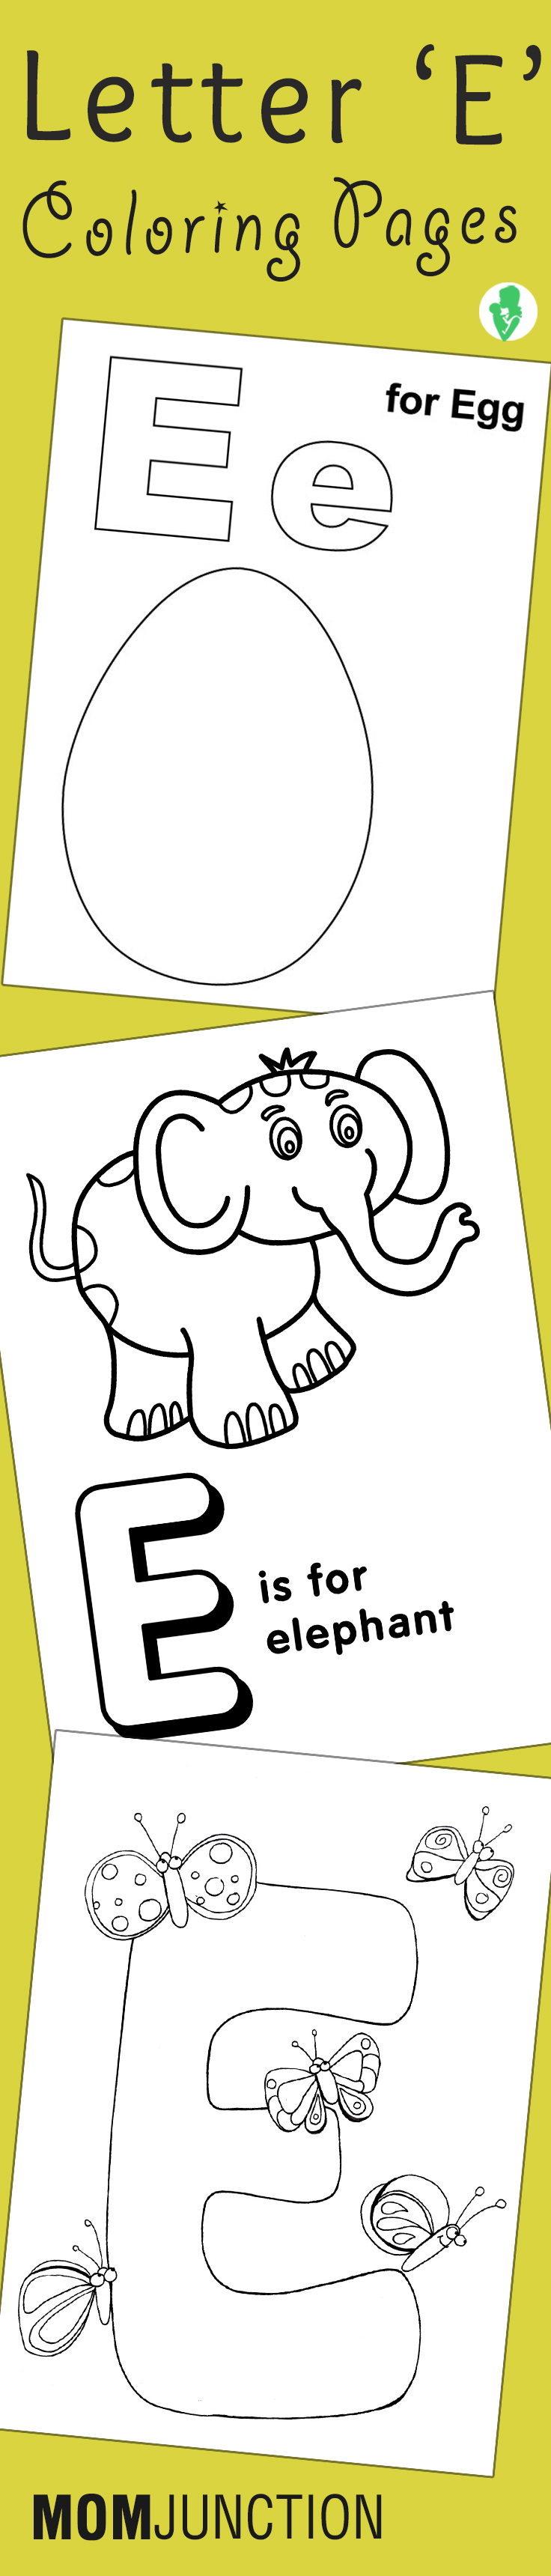 Printable letter e coloring pages - Top 10 Free Printable Letter E Coloring Pages Online